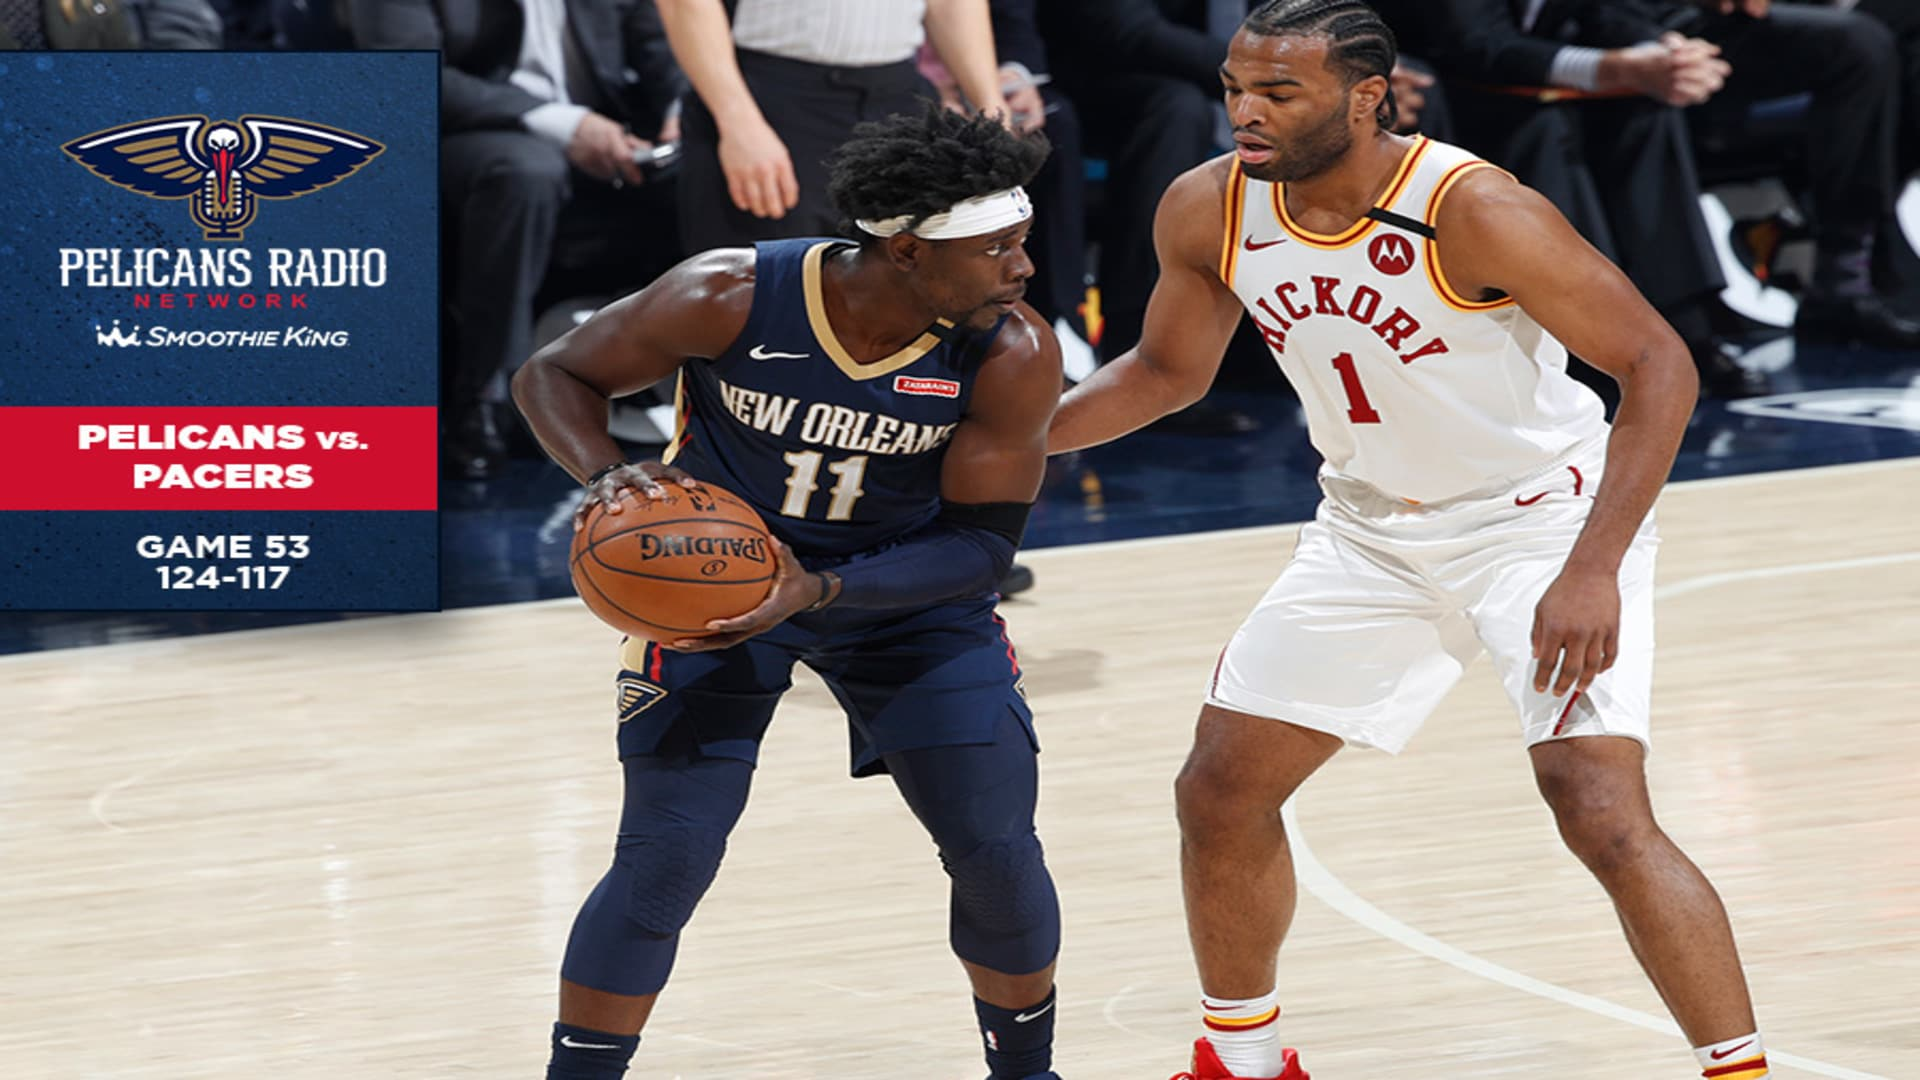 Calls of the Game: New Orleans Pelicans vs Indiana Pacers - Game 53 - Feb. 8, 2020